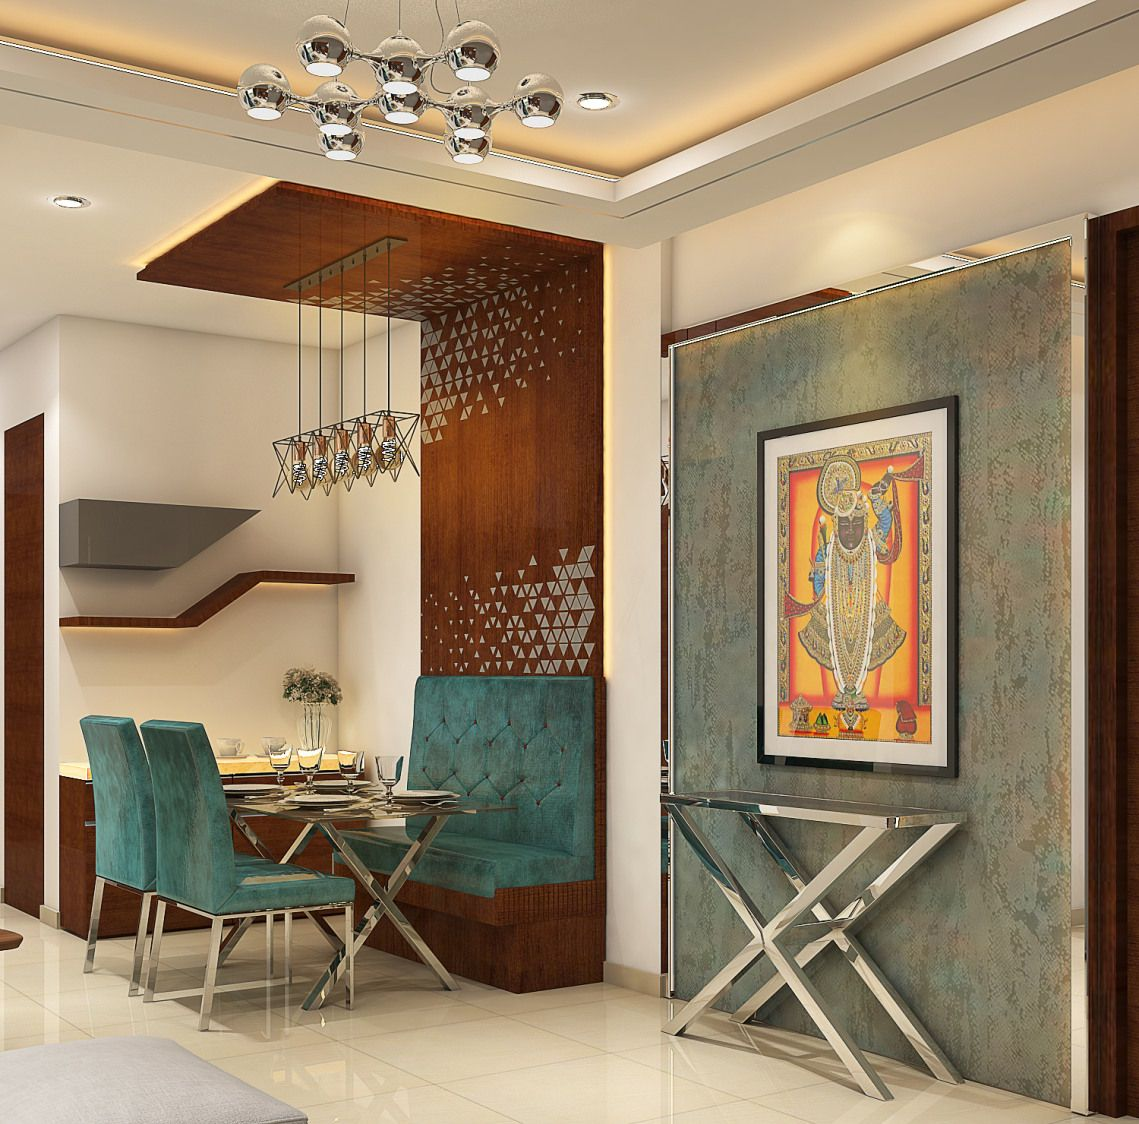 Dinning Space With Modern Velvet Furniture And Wall Decor Homes Indianhomes Homede Dining Table Design Modern Living Room Design Modern Dinning Room Design